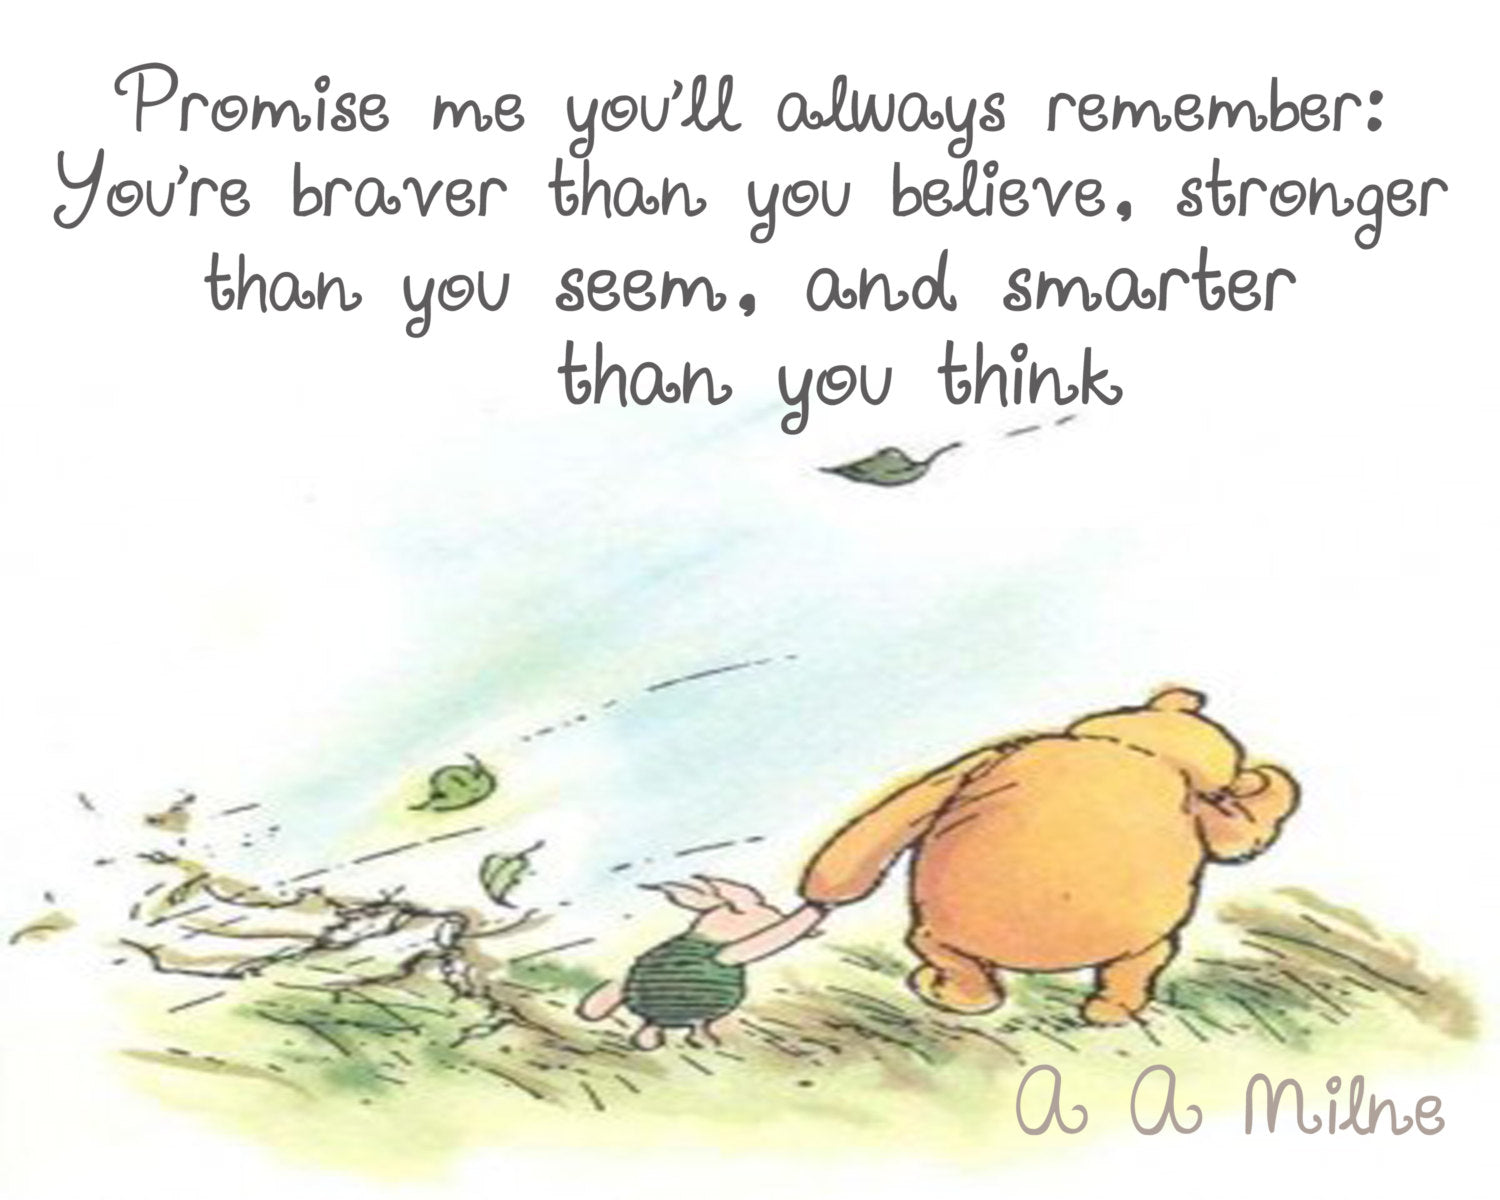 Promise me you'll always remember; you're braver than you believe, stronger than you seem, and smarter than you think